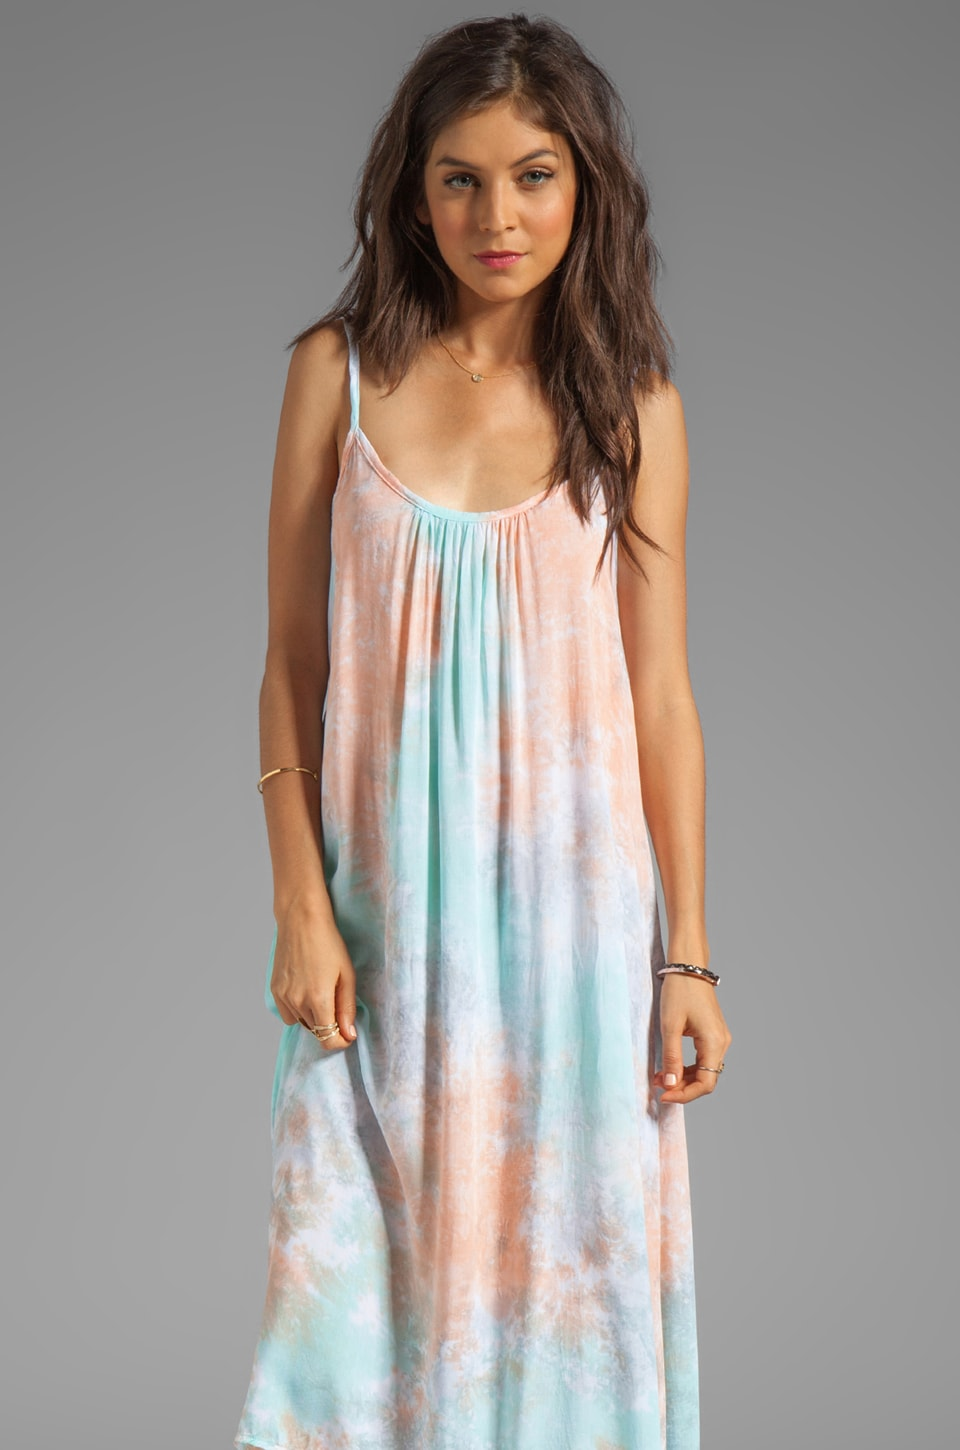 Tiare Hawaii Rio Dress in Peach/Teal/Grey